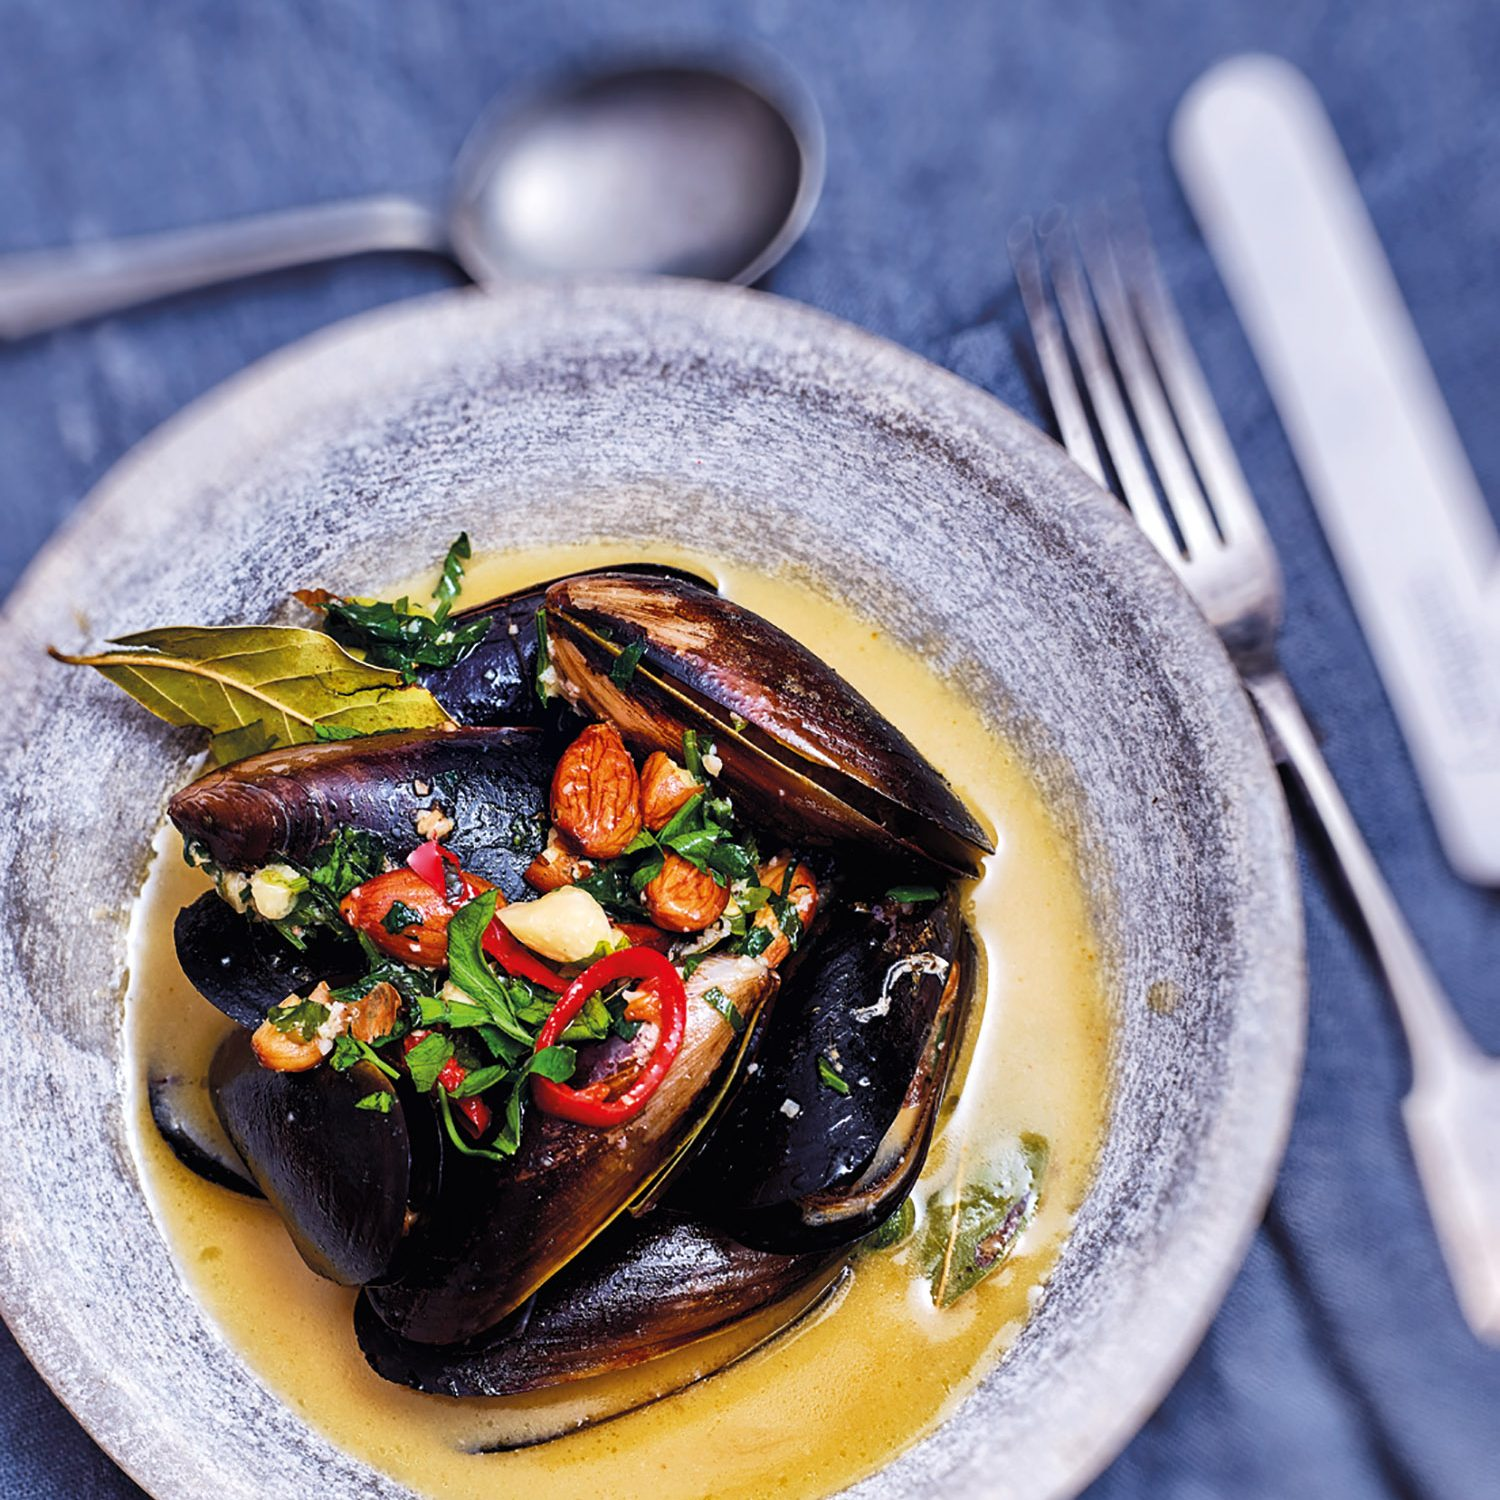 Mussels in Sherry Broth with almonds & bay leavesMussels in Sherry Broth with almonds & bay leaves